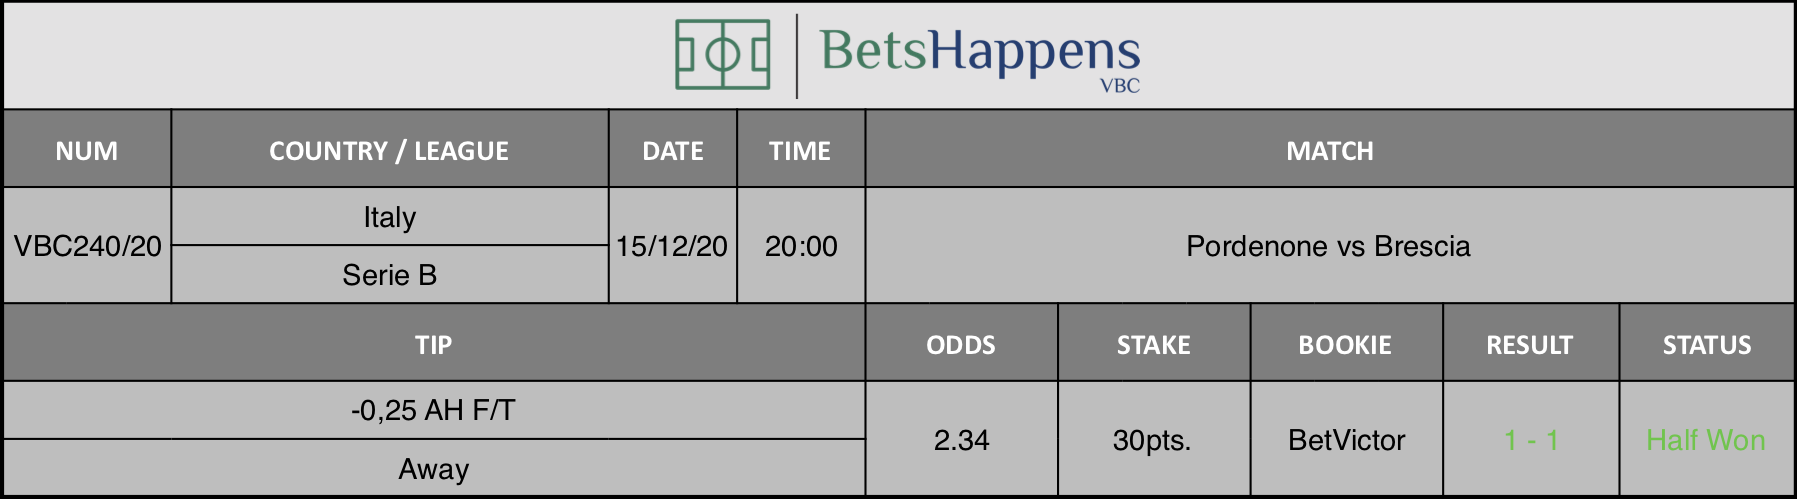 Results of our tip for the Pordenone vs Brescia match where -0,25 AH F/T Away is recommended.